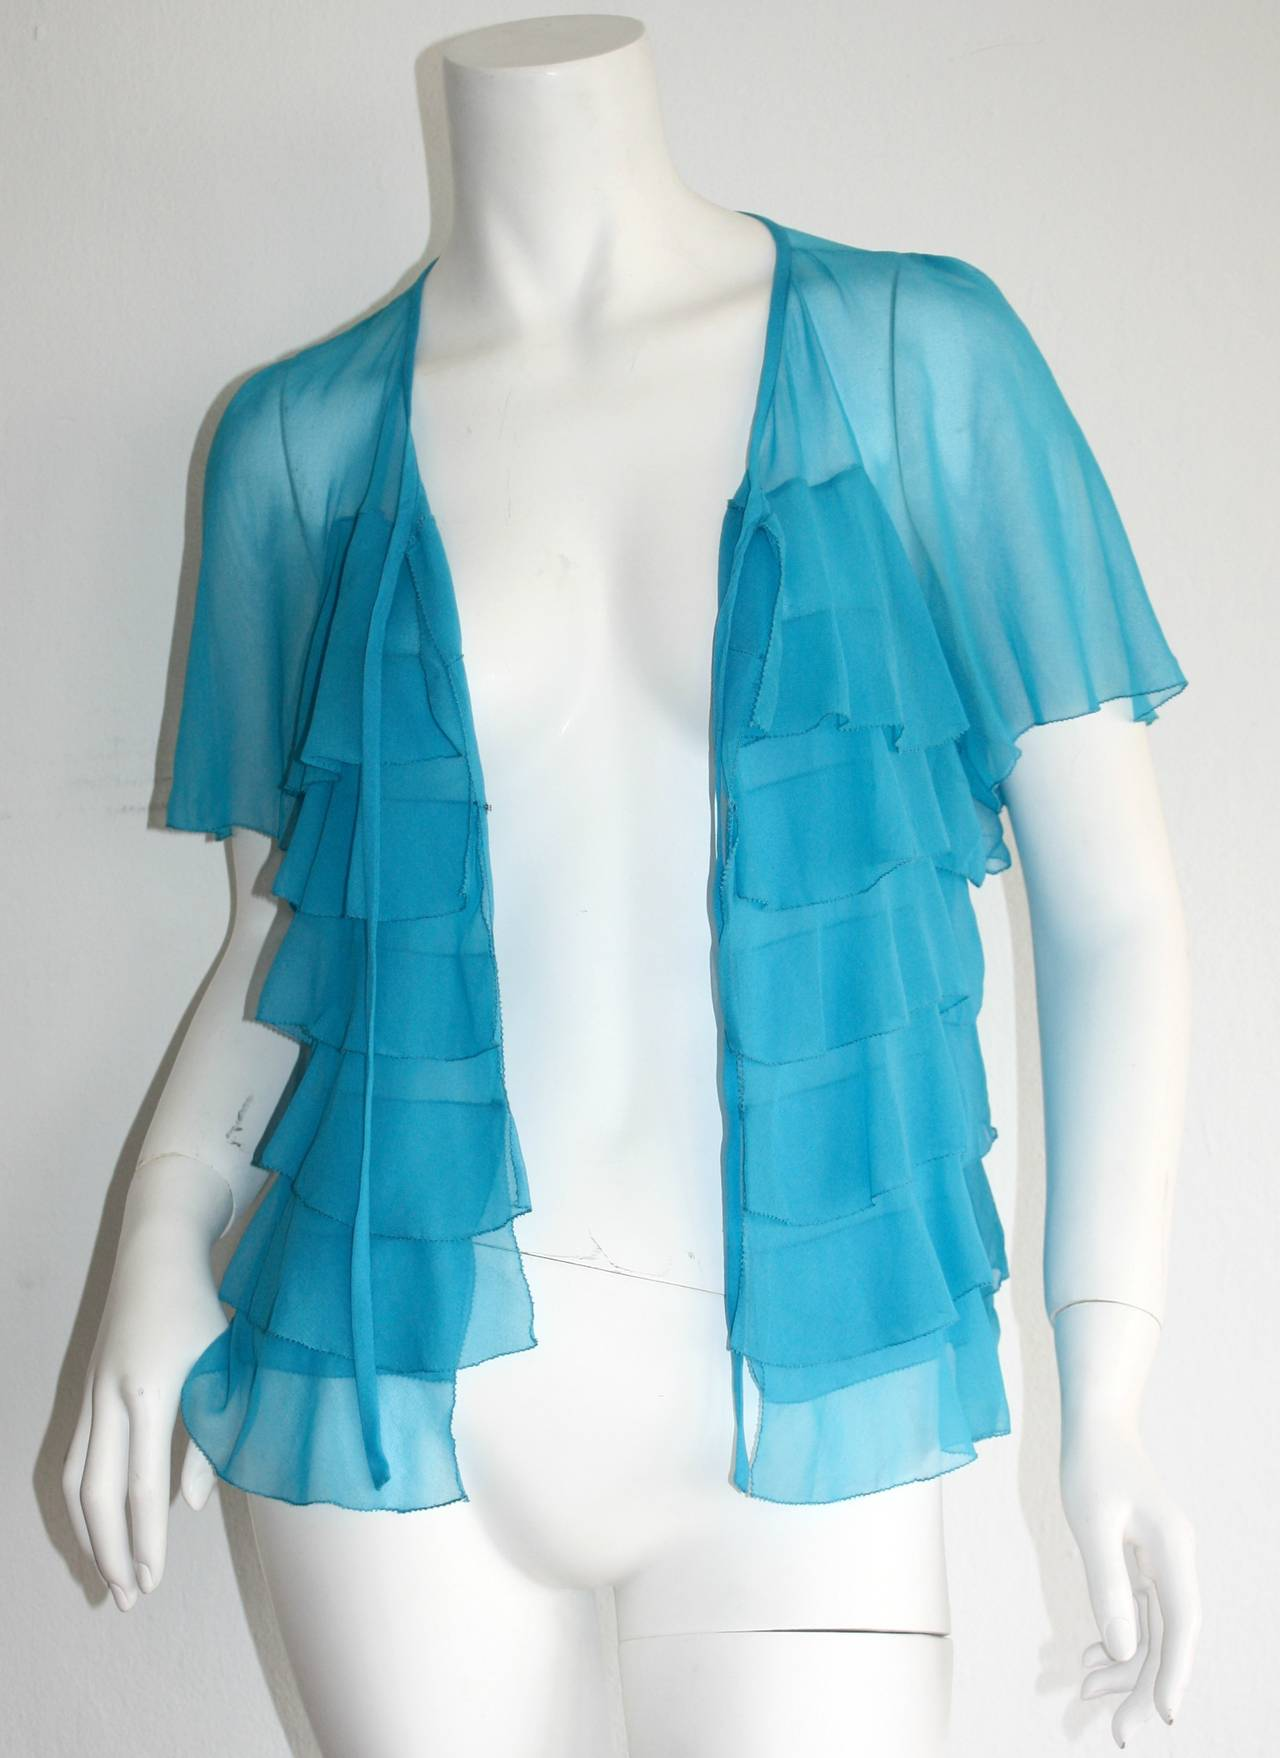 Vintage Holly's Harp Blue Silk Chiffon Tiered Ruffle Bow Blouse 5